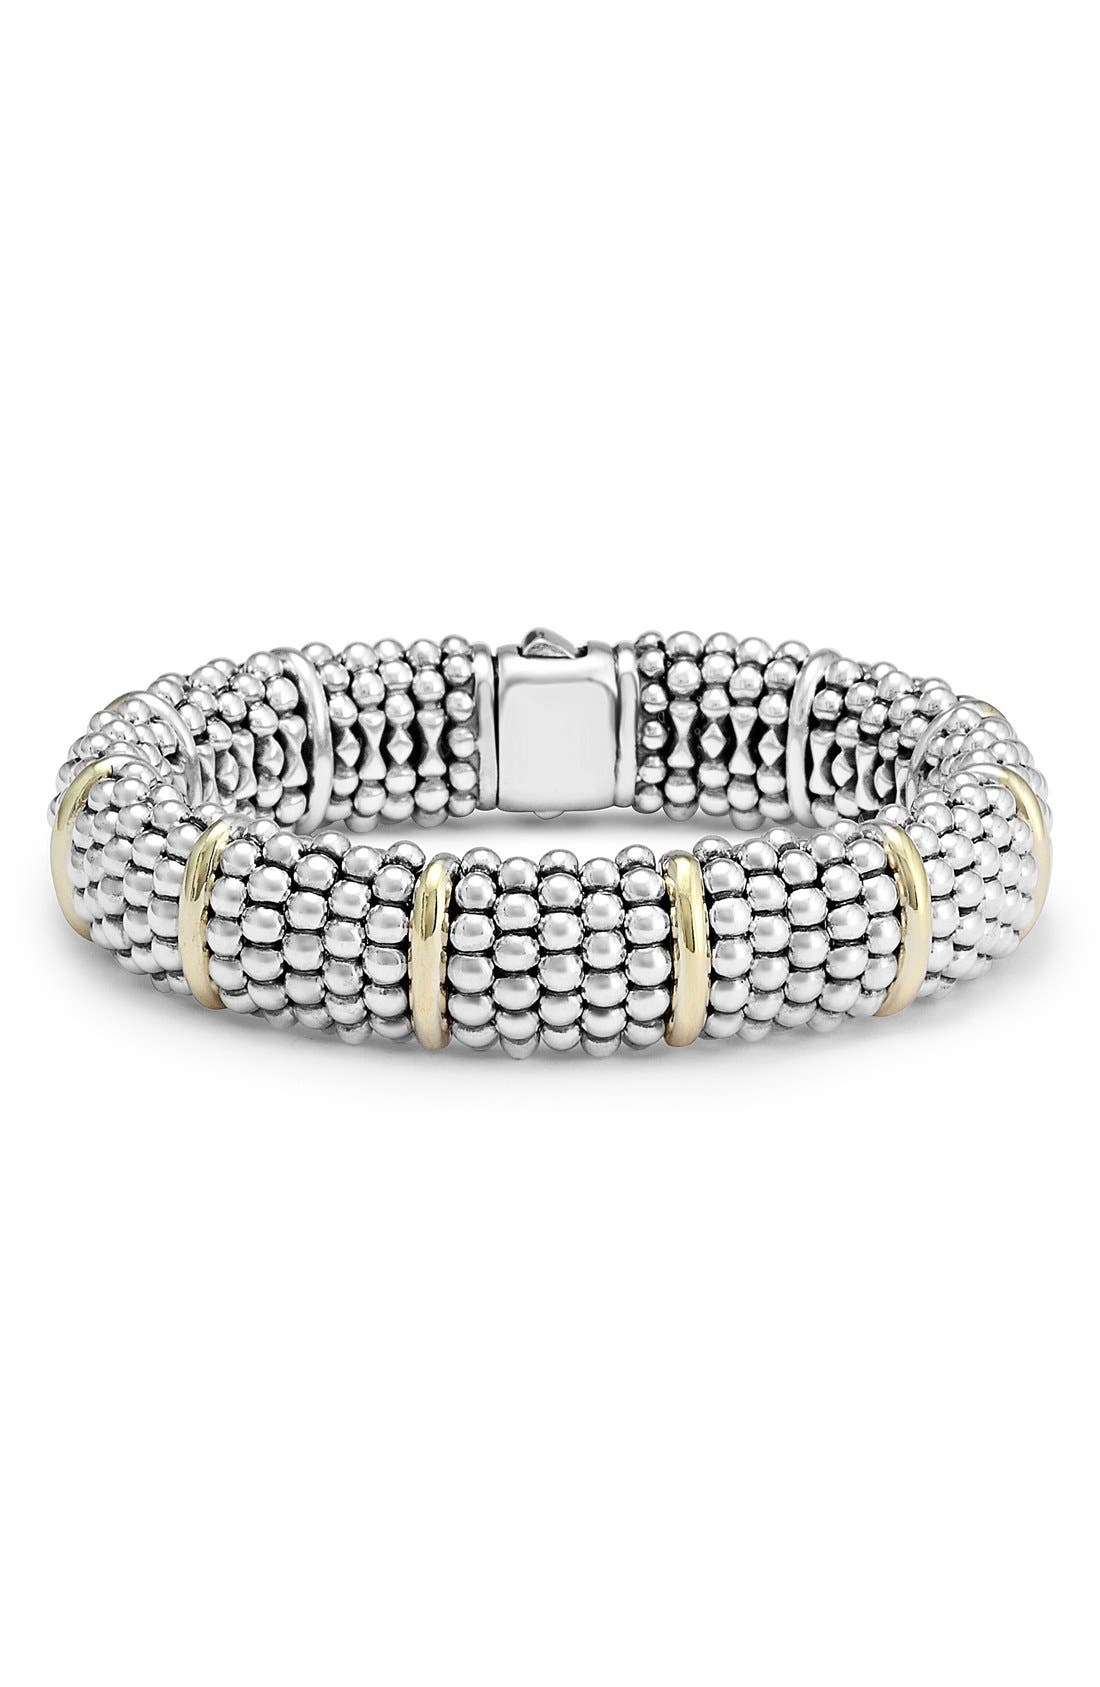 LAGOS,                             Oval Caviar Bracelet,                             Alternate thumbnail 5, color,                             SILVER/ GOLD